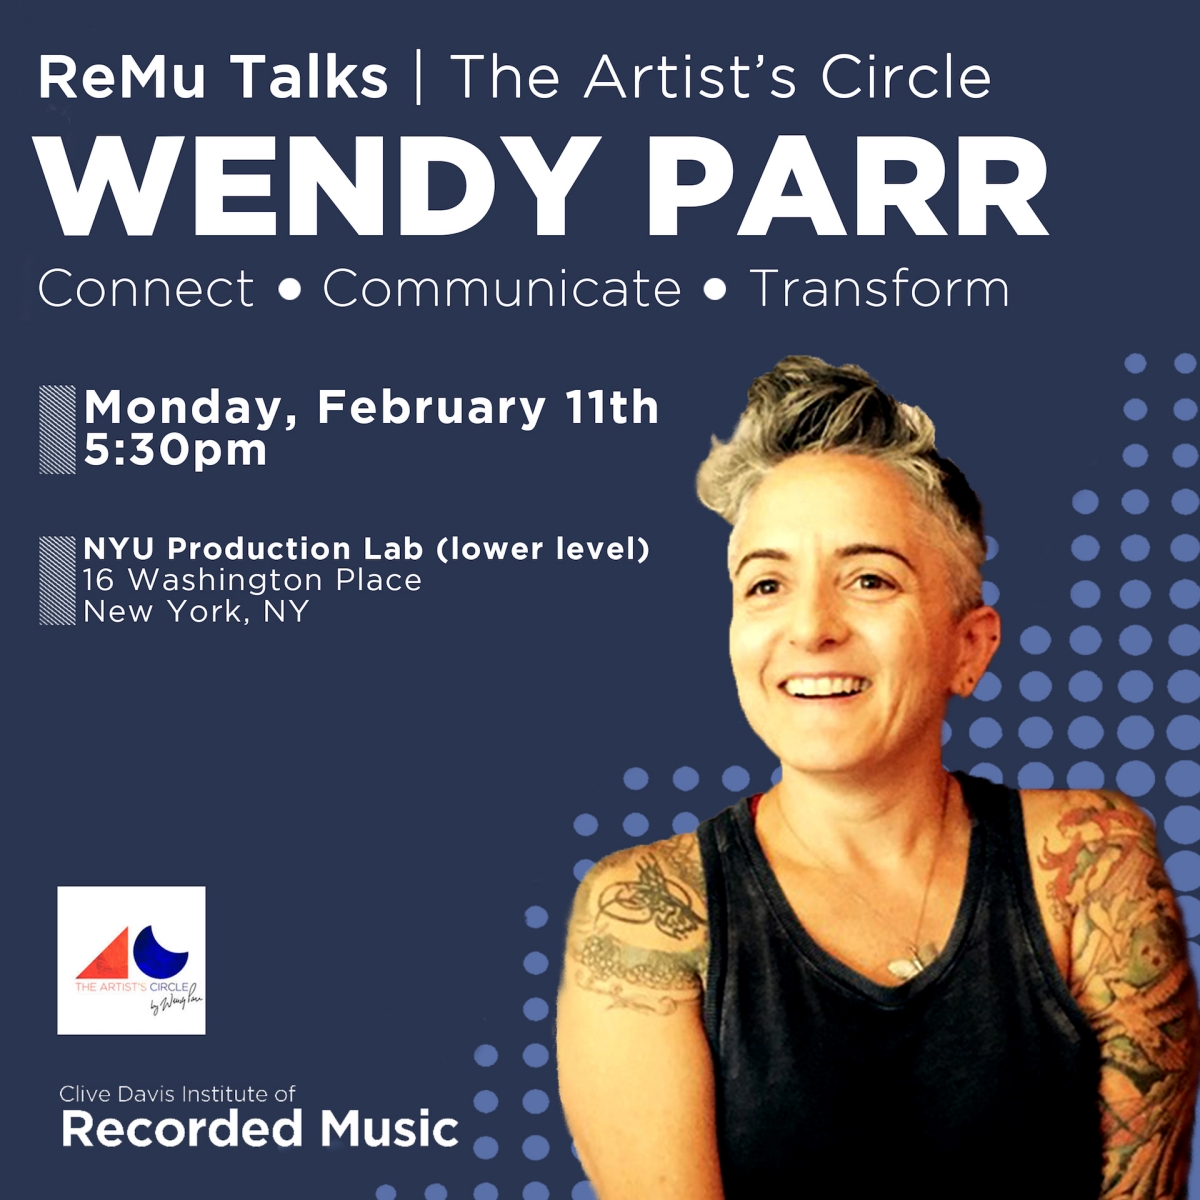 Flyer for The Artist's Circle with Wendy Parr